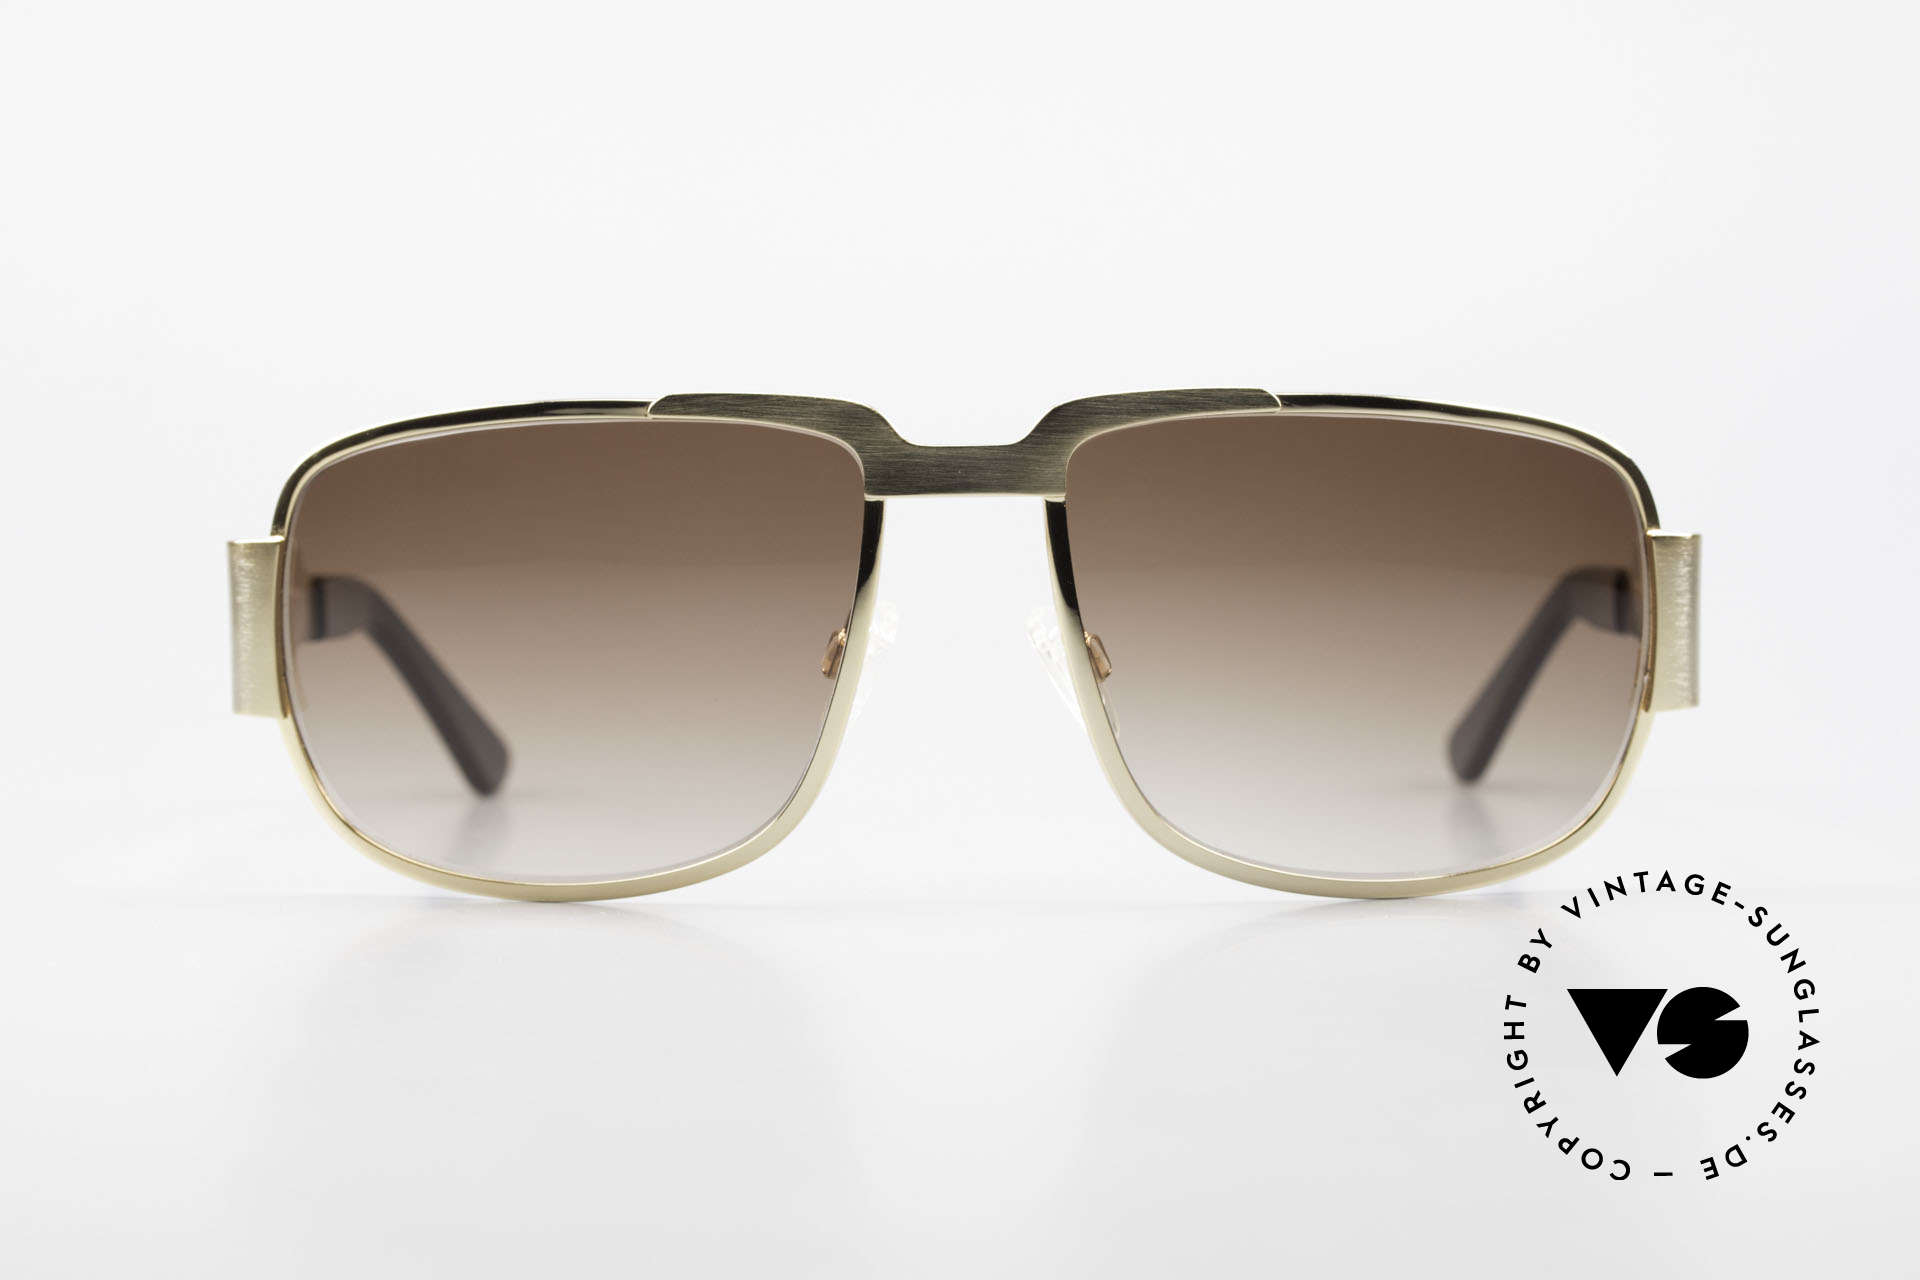 """Neostyle Nautic 2 Brad Pitt Tarantino Sunglasses, model was worn in """"once upon a time in hollywood"""", 2019, Made for Men"""